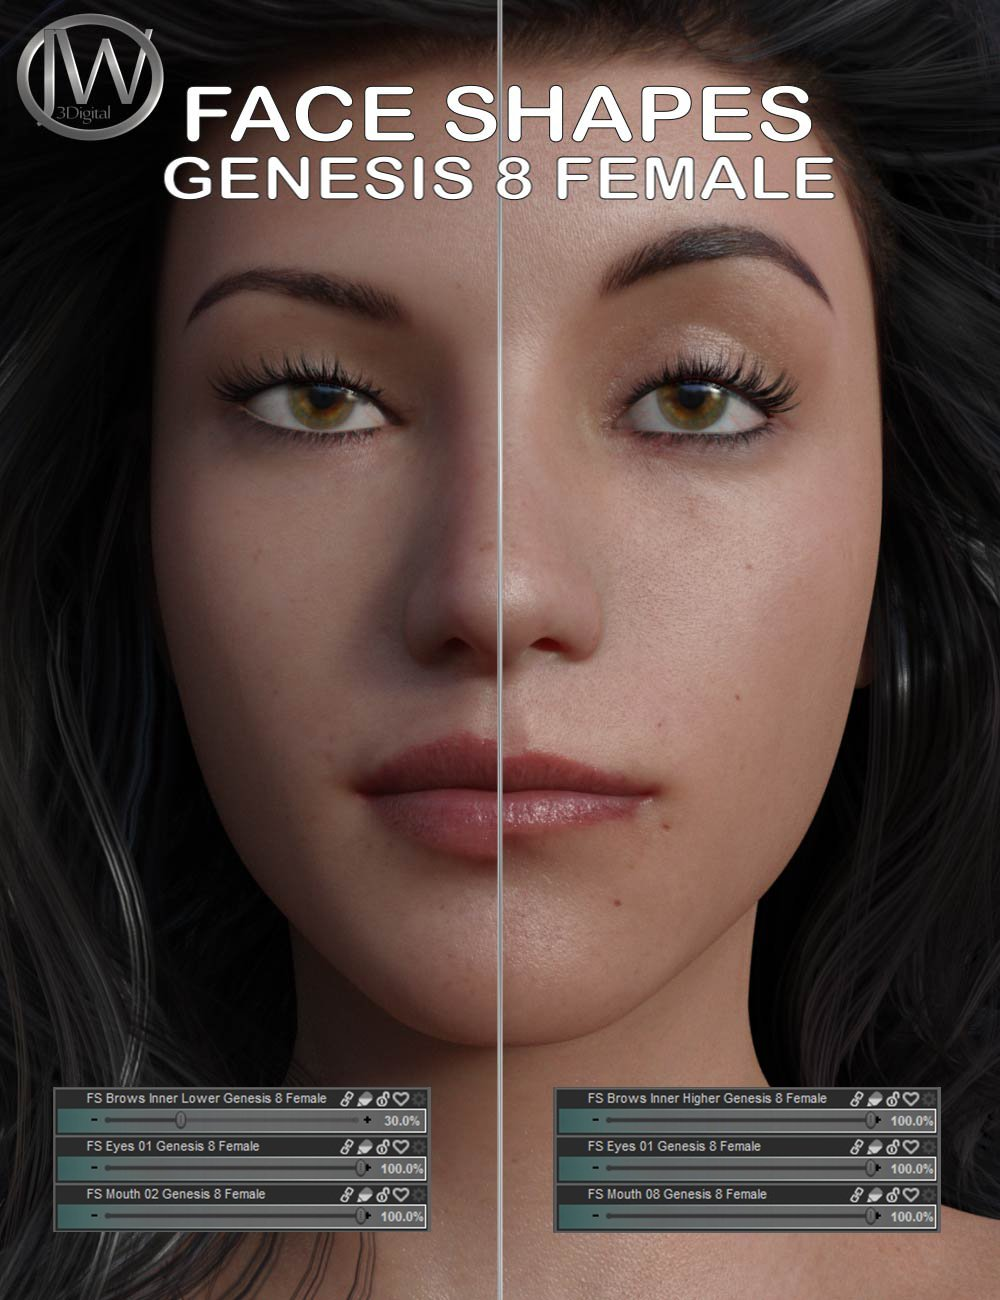 Face Shapes for Genesis 8 Female by: JWolf, 3D Models by Daz 3D